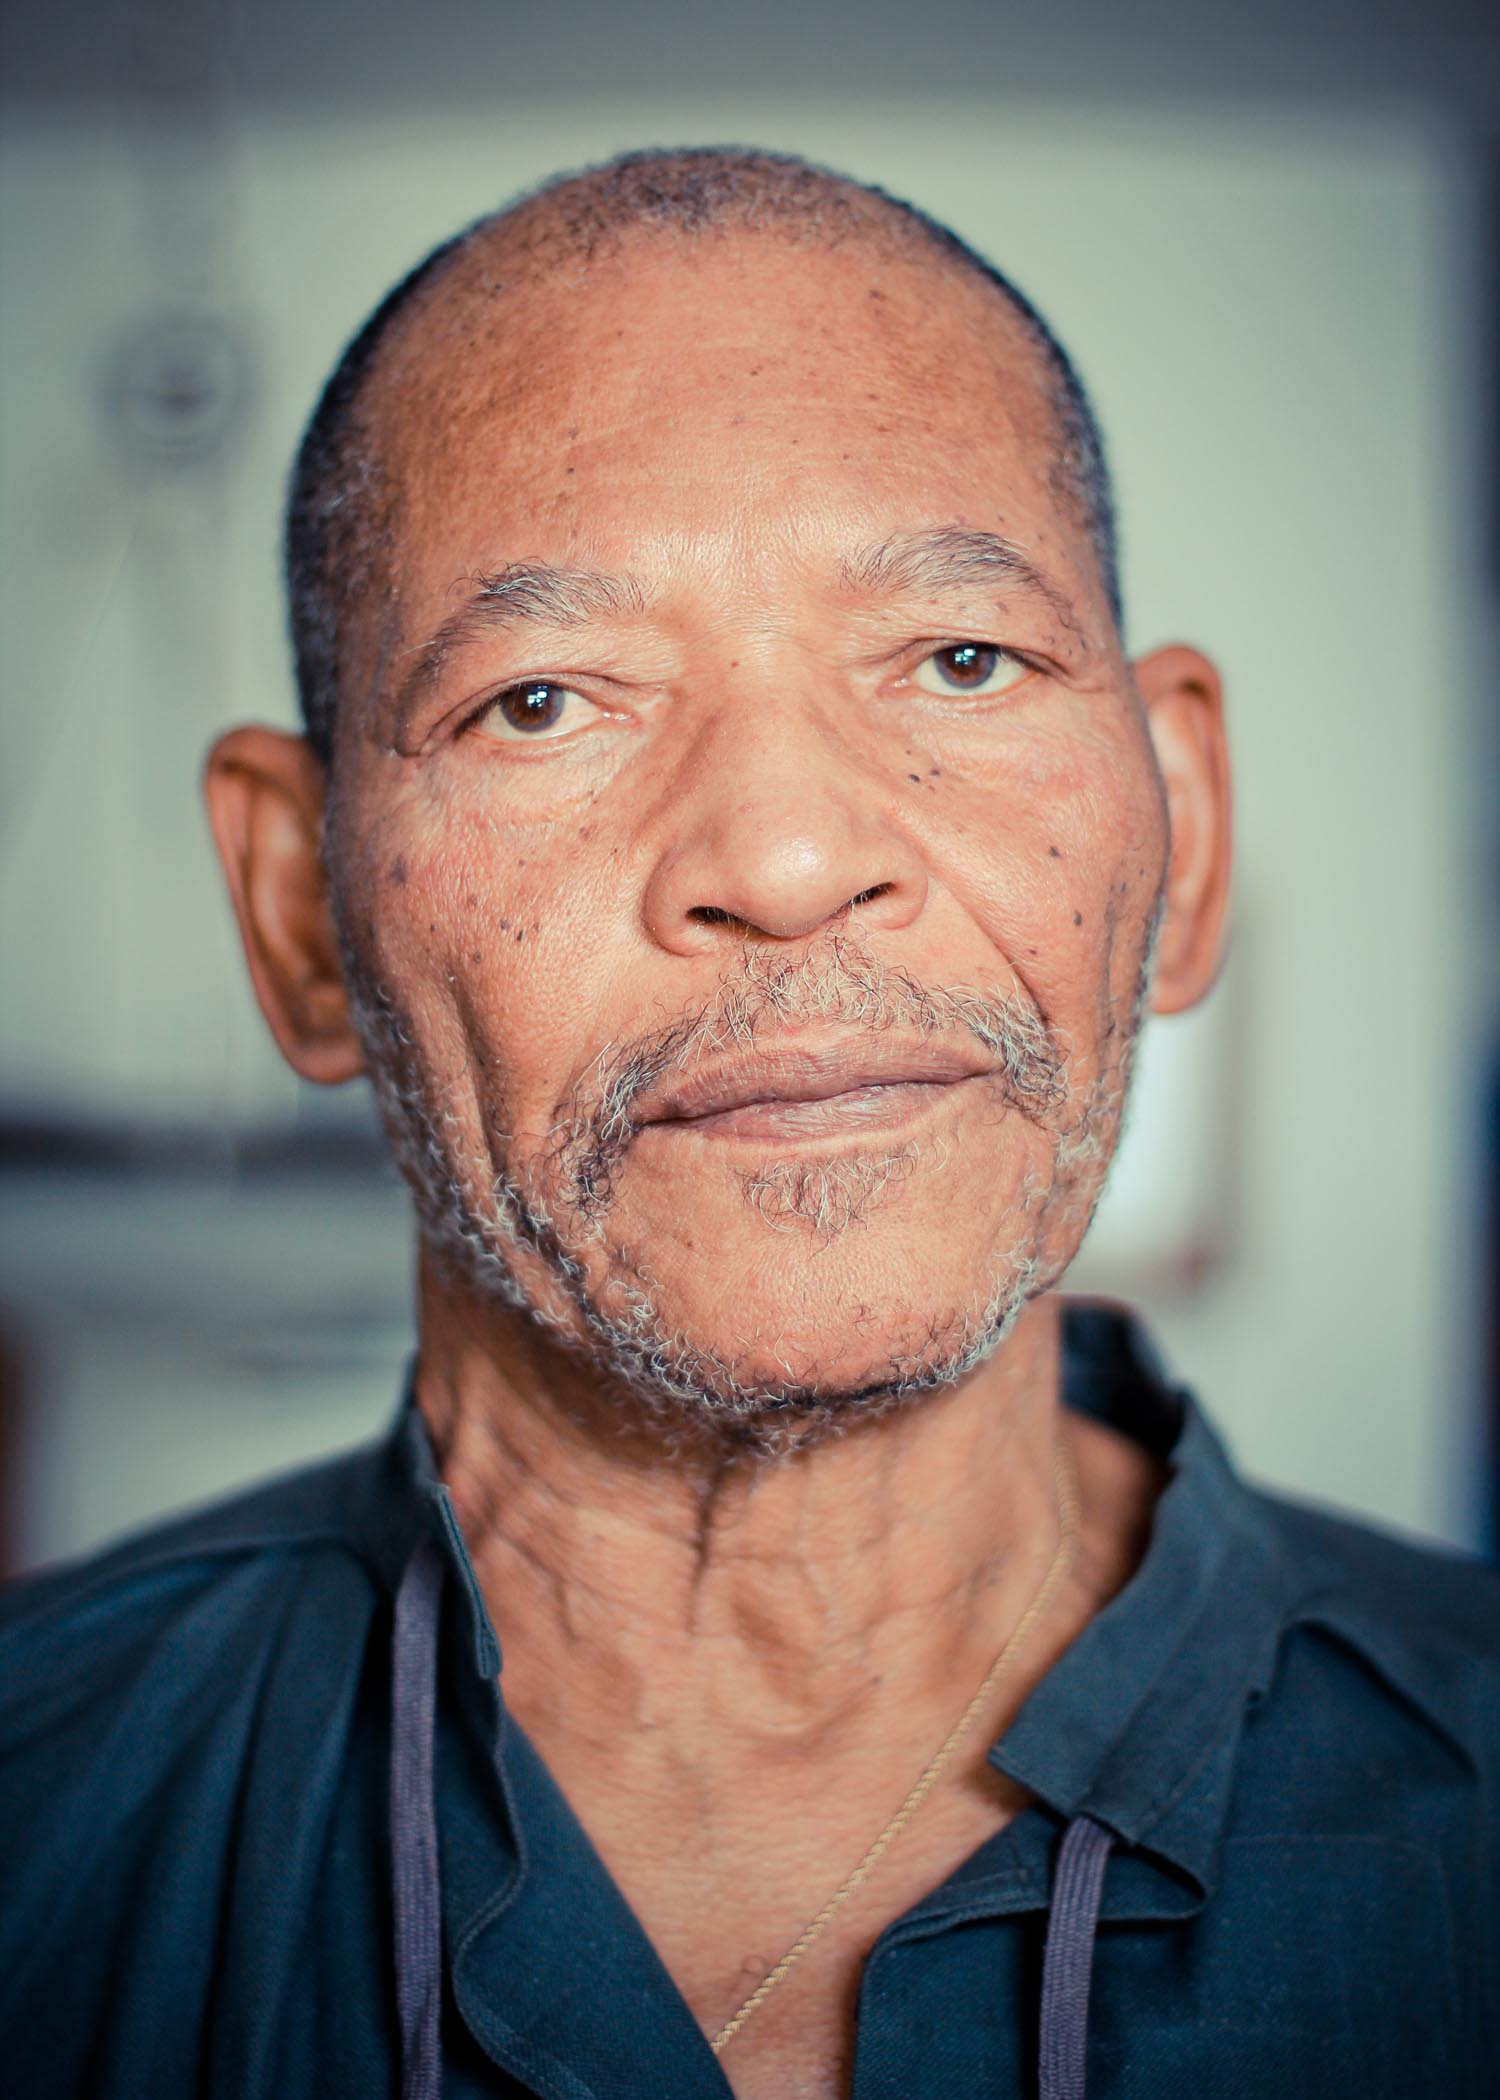 Delbert Tibbs - our third exoneree